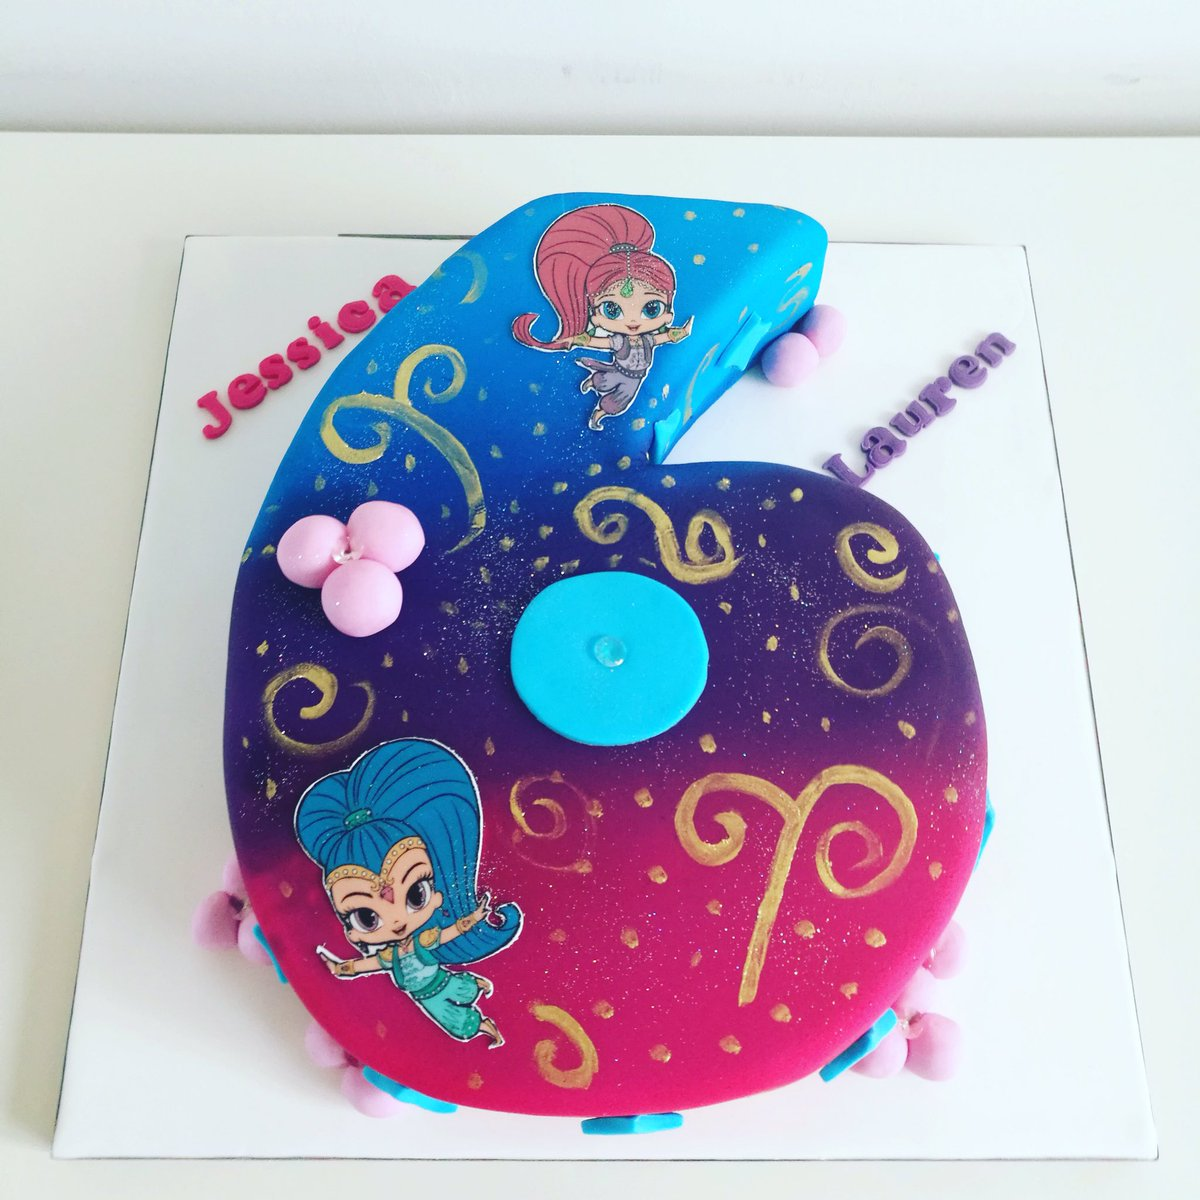 Siobhan On Twitter Shimmer And Shine Number 6 Ruby Wedding Cake